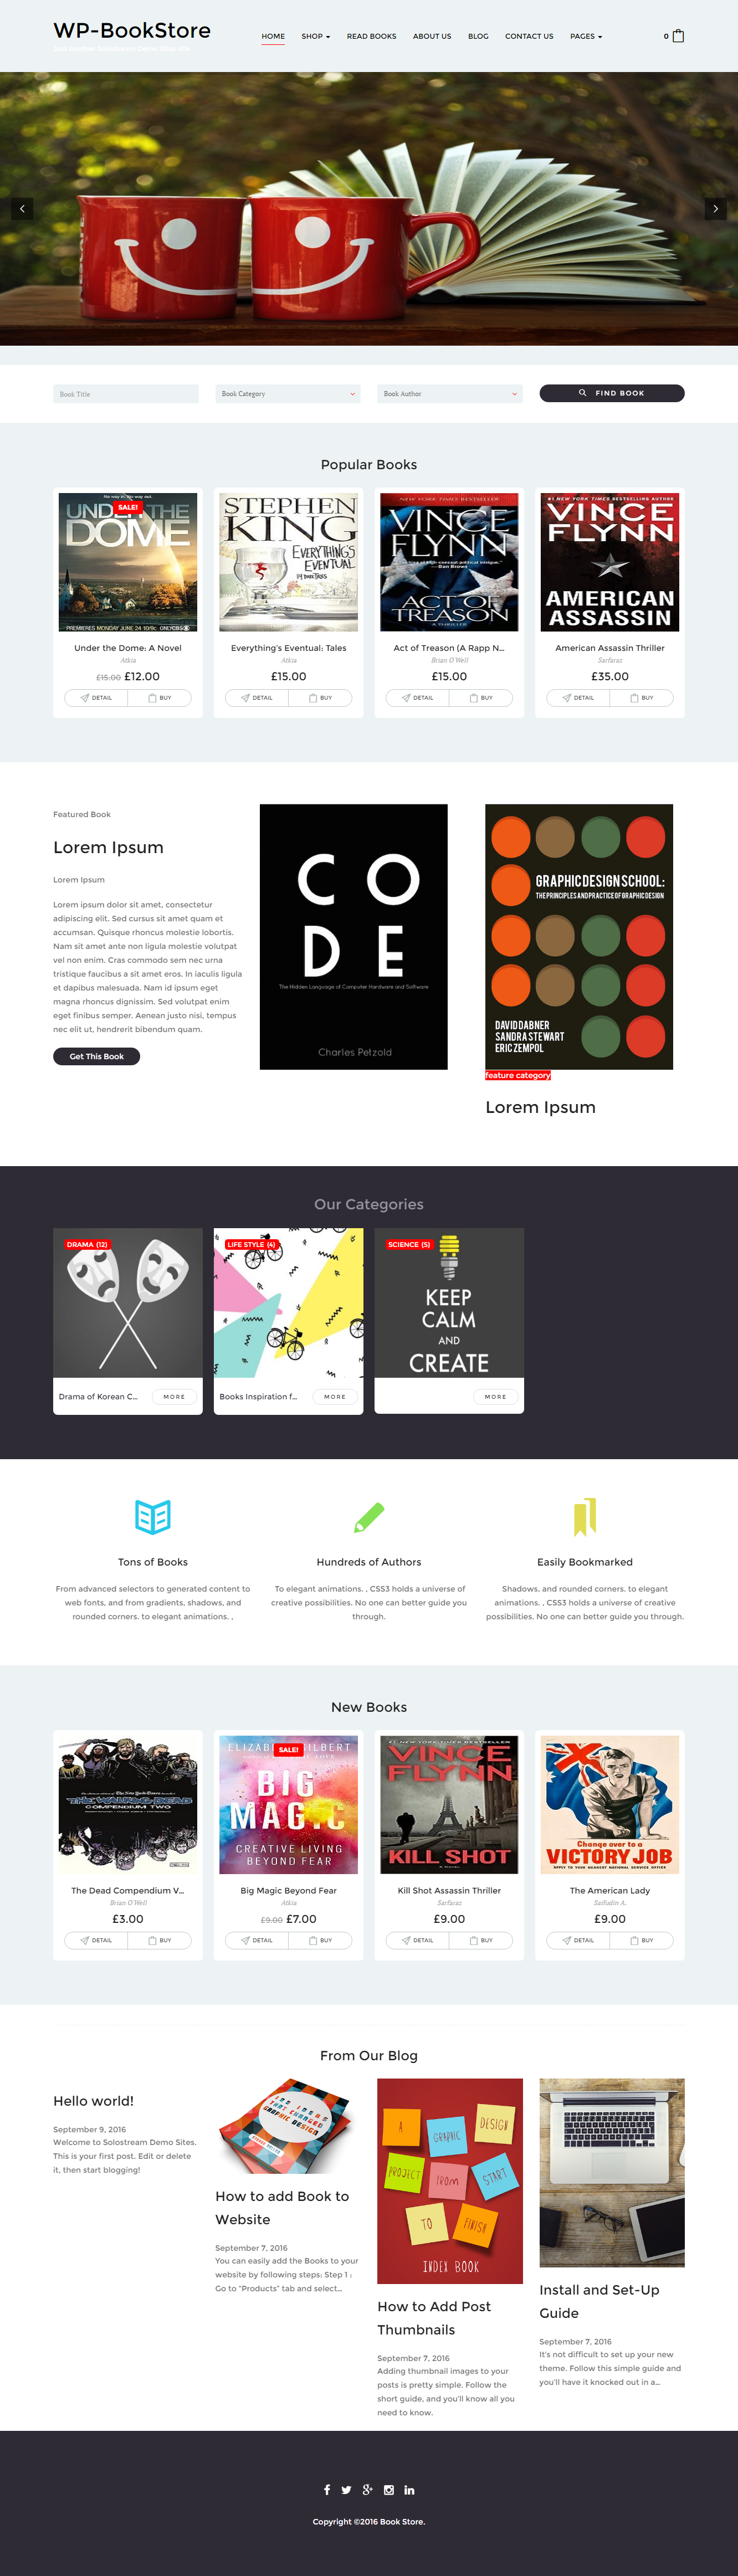 WP-BookStore theme